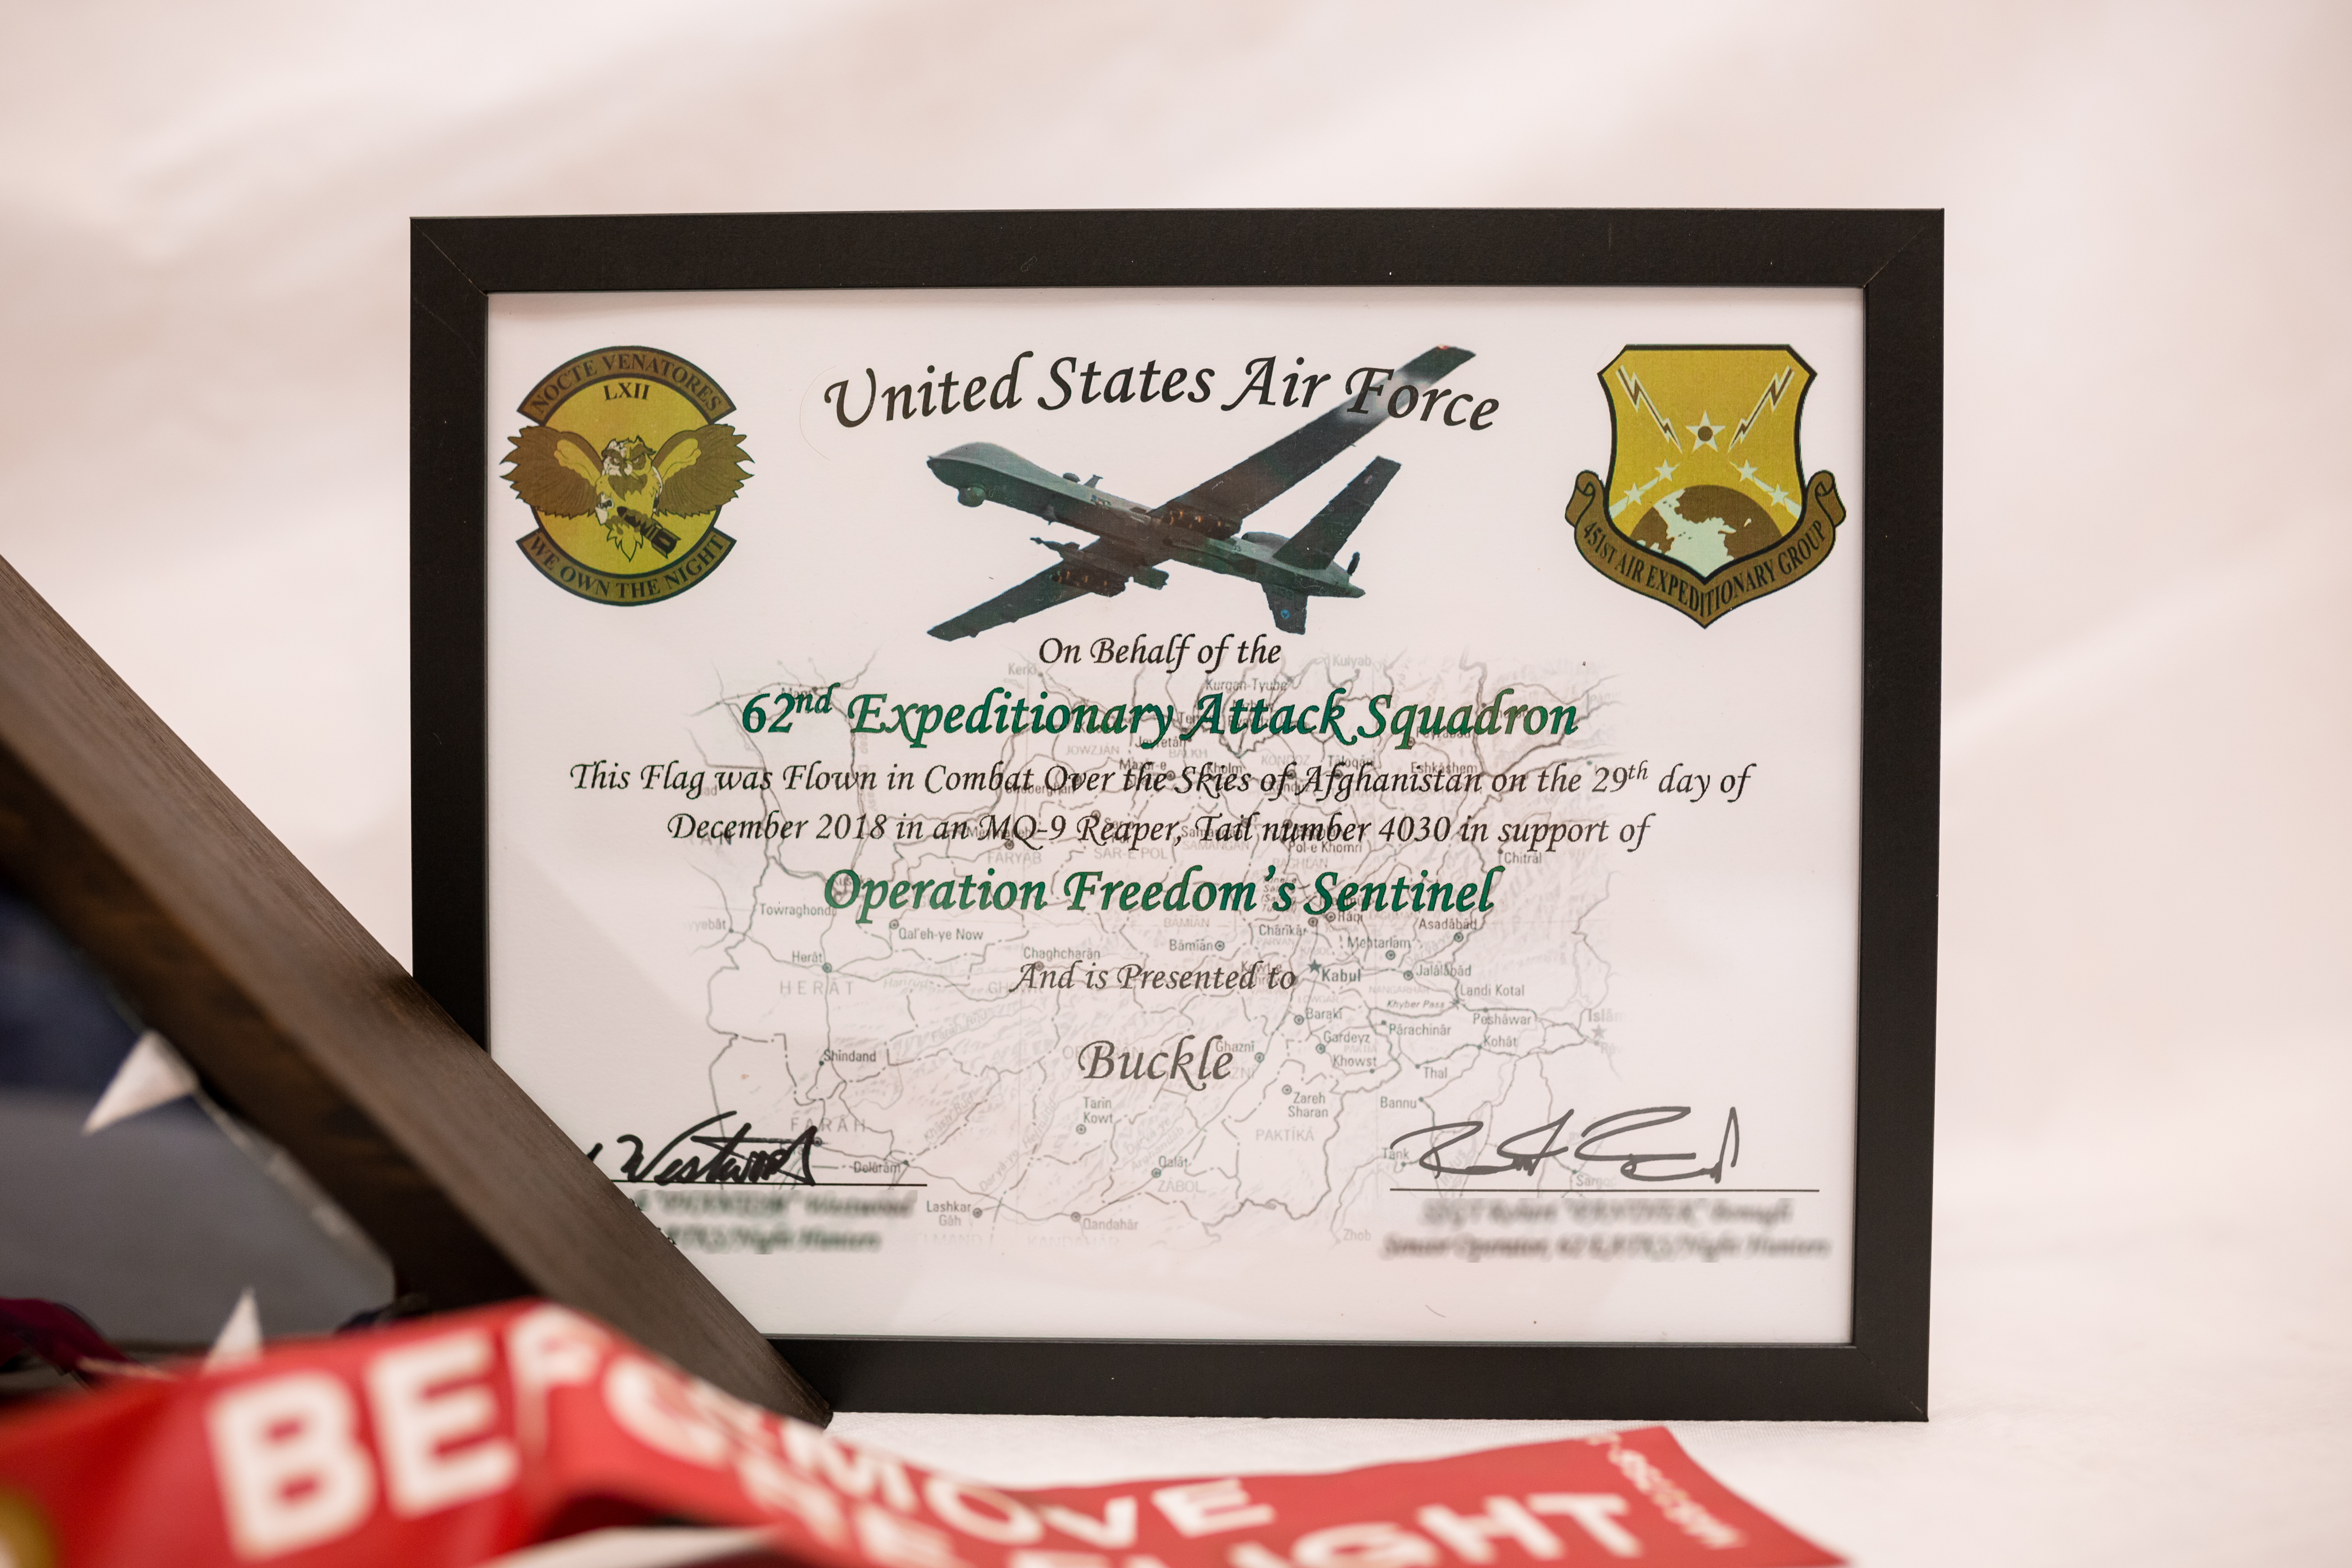 On behalf on the 62nd Expeditionary Attack Squadron, this flag was flown in combat over the skies of Afghanistan on the 29th day of December 2018, in an MQ9 Reaper, tail number 4030, in support of Operation Freedom's Sentinel, and is presented to Buckle.